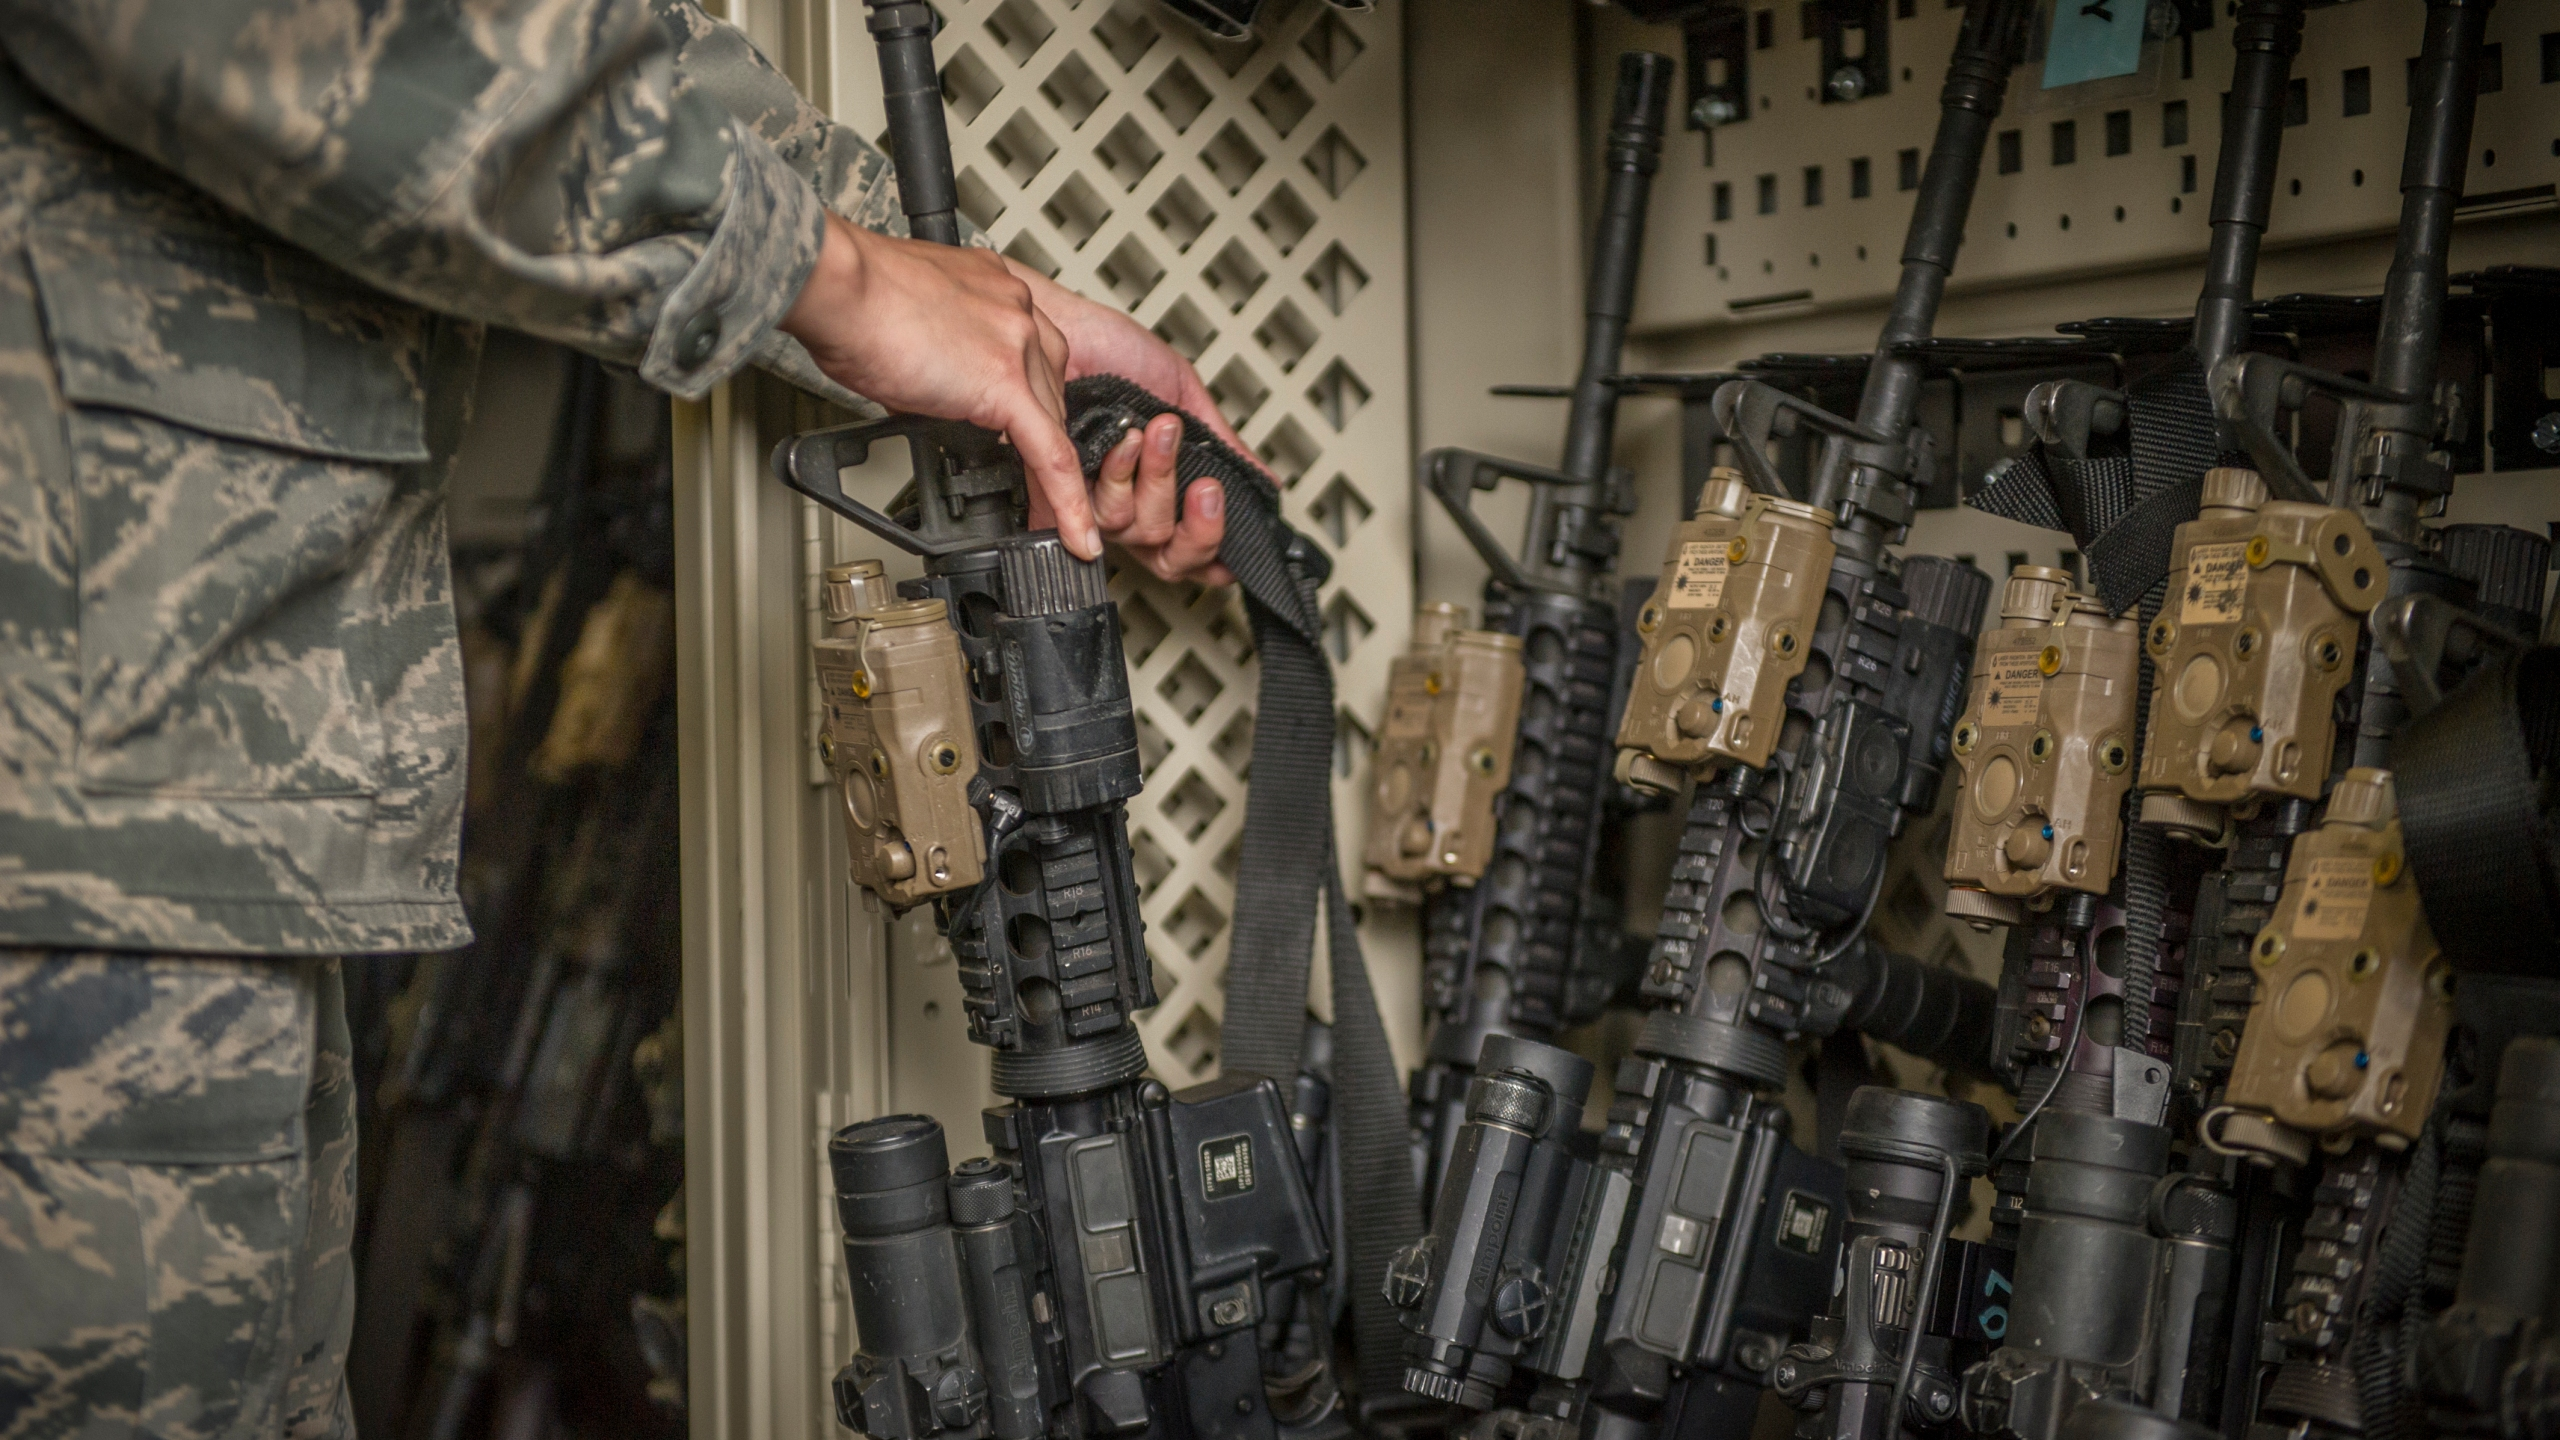 In this April 2, 2015, photo made available by the U.S. Air Force, a senior airman from the 49th Security Forces Squadron in charge of the armory, returns an M4 carbine to a rack at Holloman Air Force Base, N.M. (Airman 1st Class Aaron Montoya/U.S. Air Force via AP)